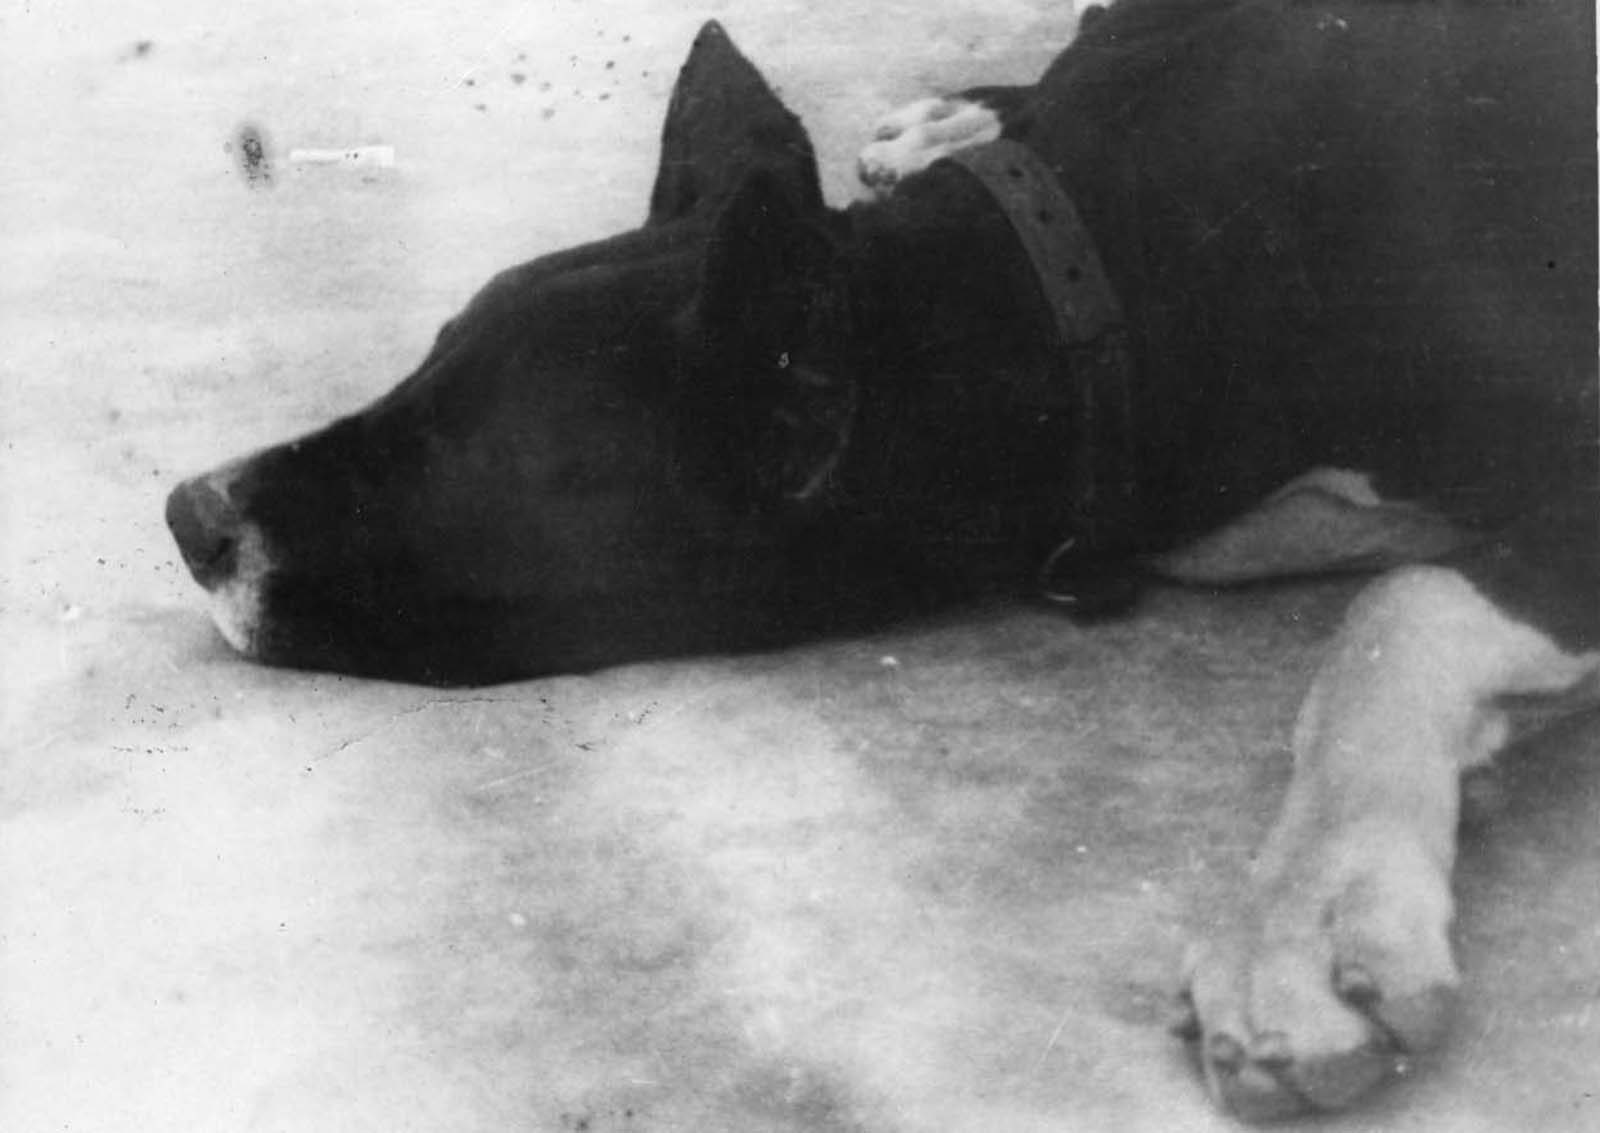 One of Goeth's dog. His two dogs, Rolf and Ralf, were trained to tear inmates to death.